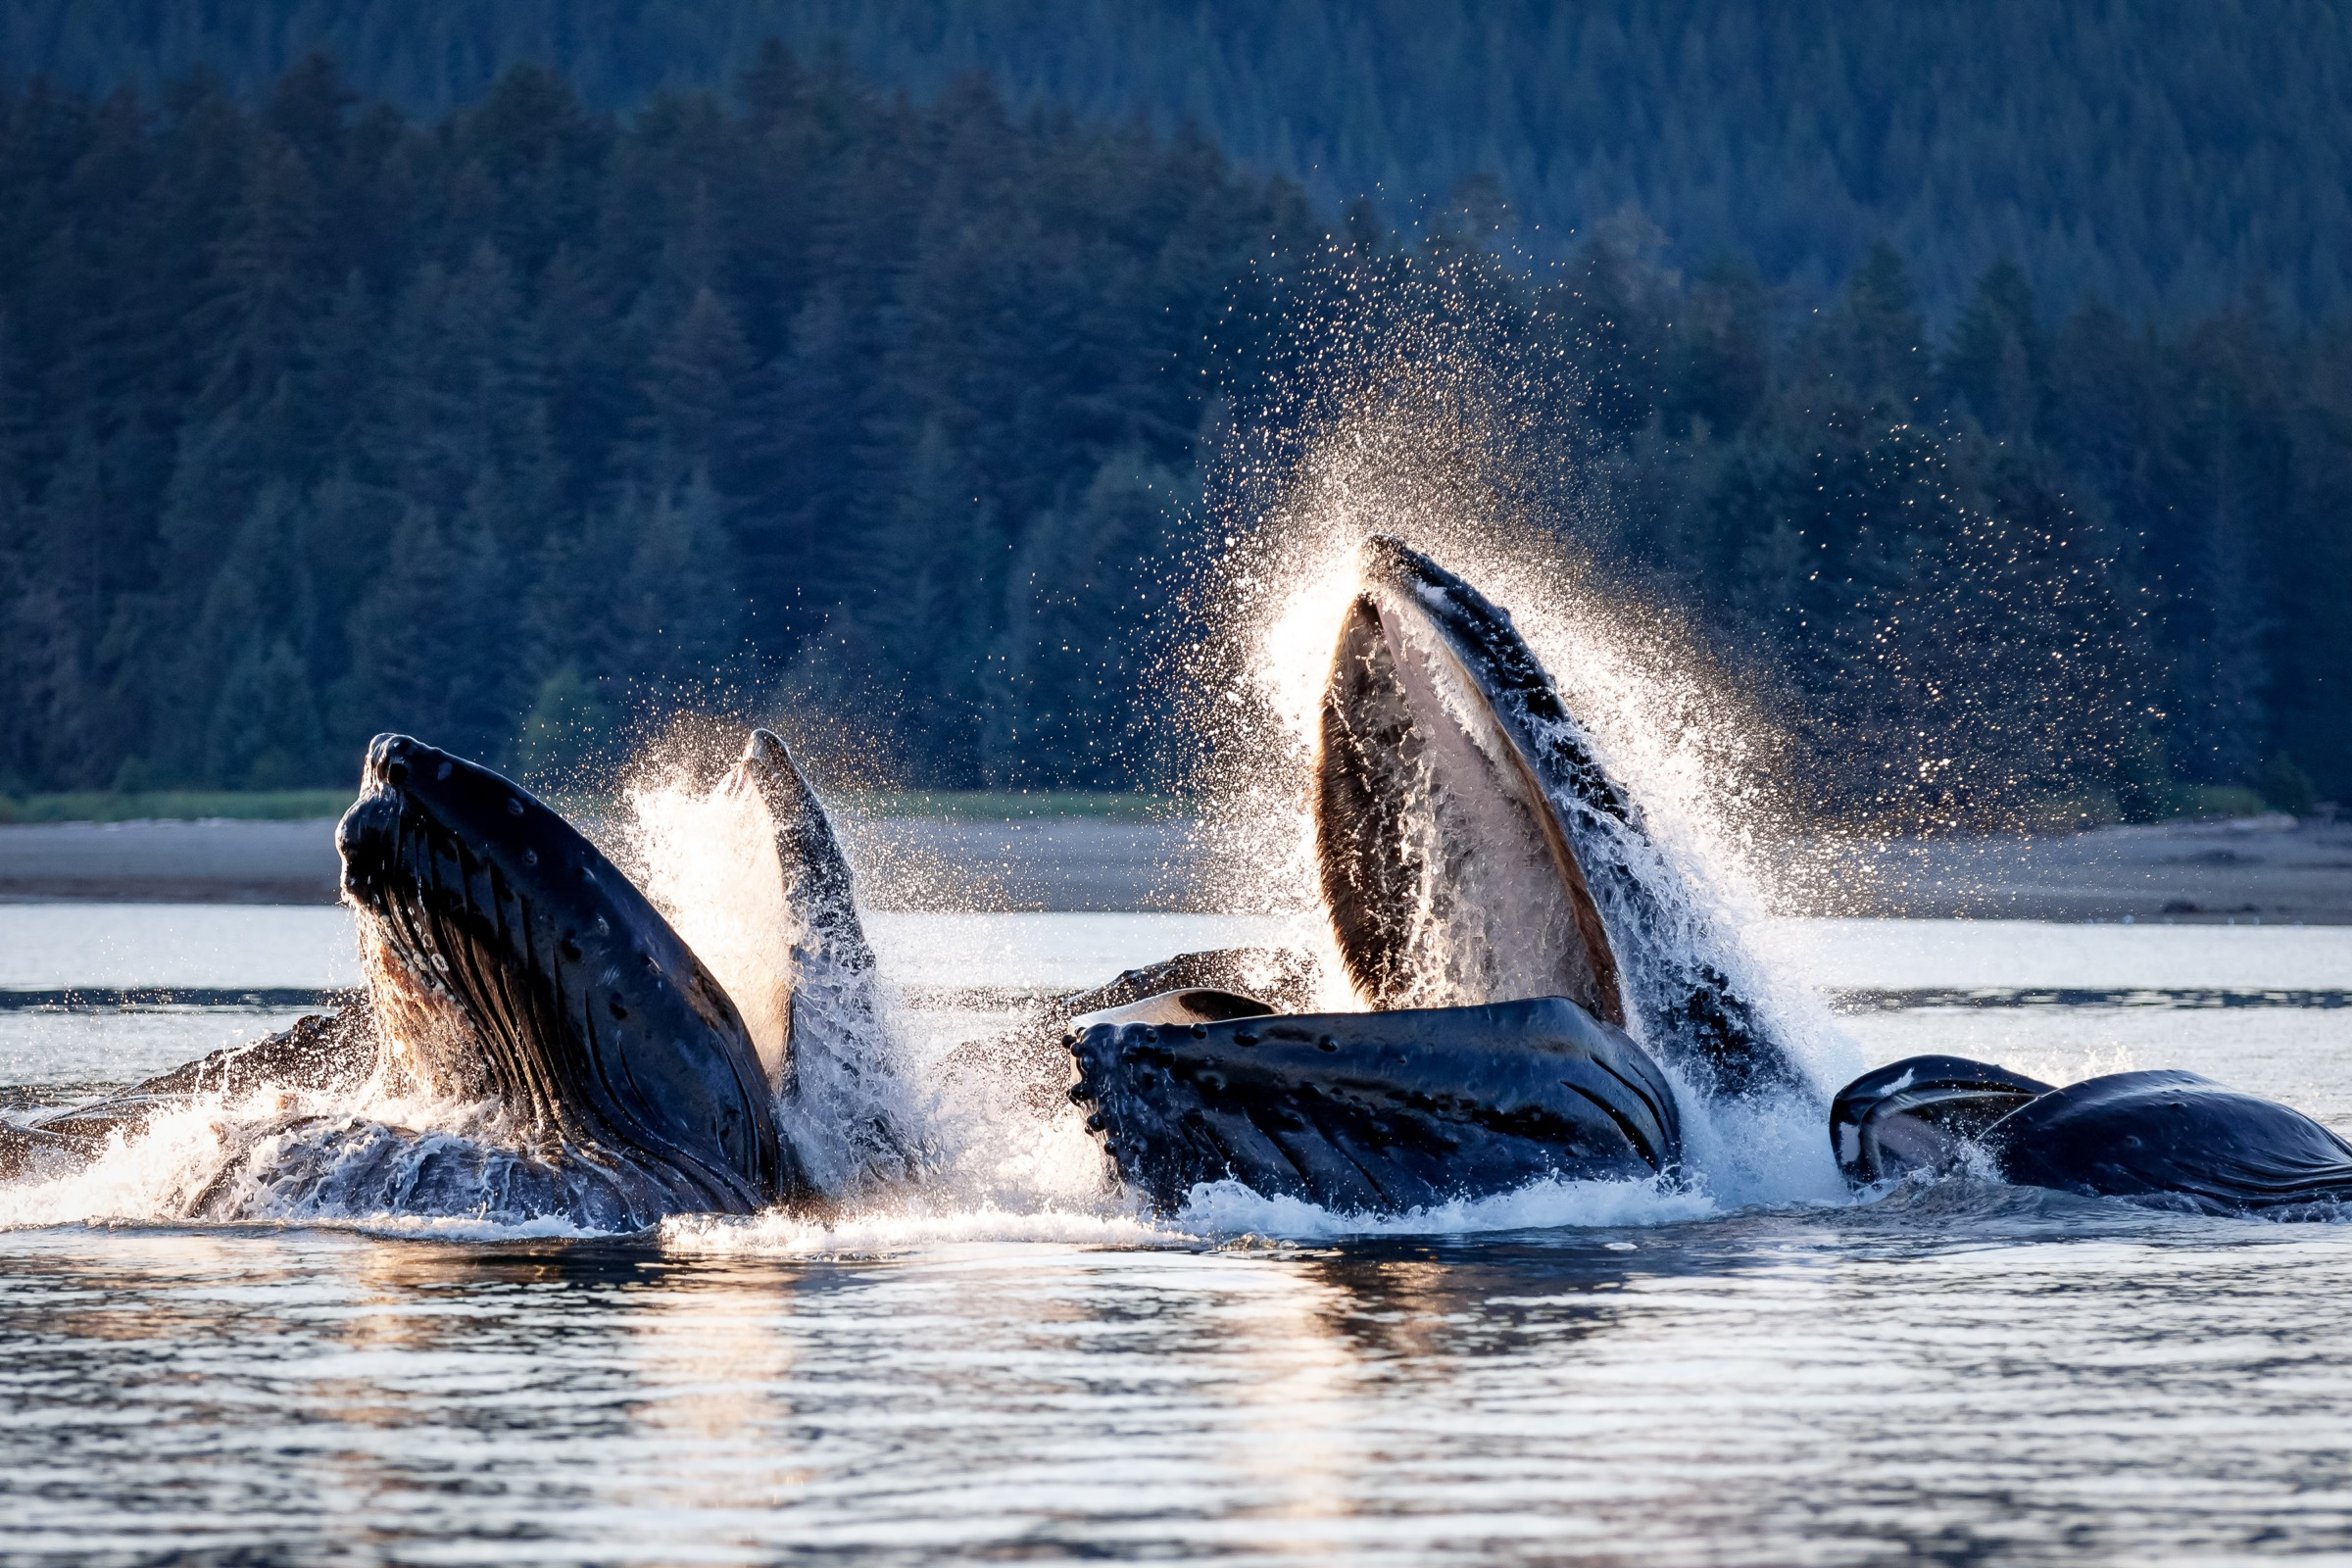 A pod of humpback whales (Megaptera novangliaea) herds herring and other fish with their bubble net feeding technique in Alaska's Chatham Strait. Photograph by Tony Wu